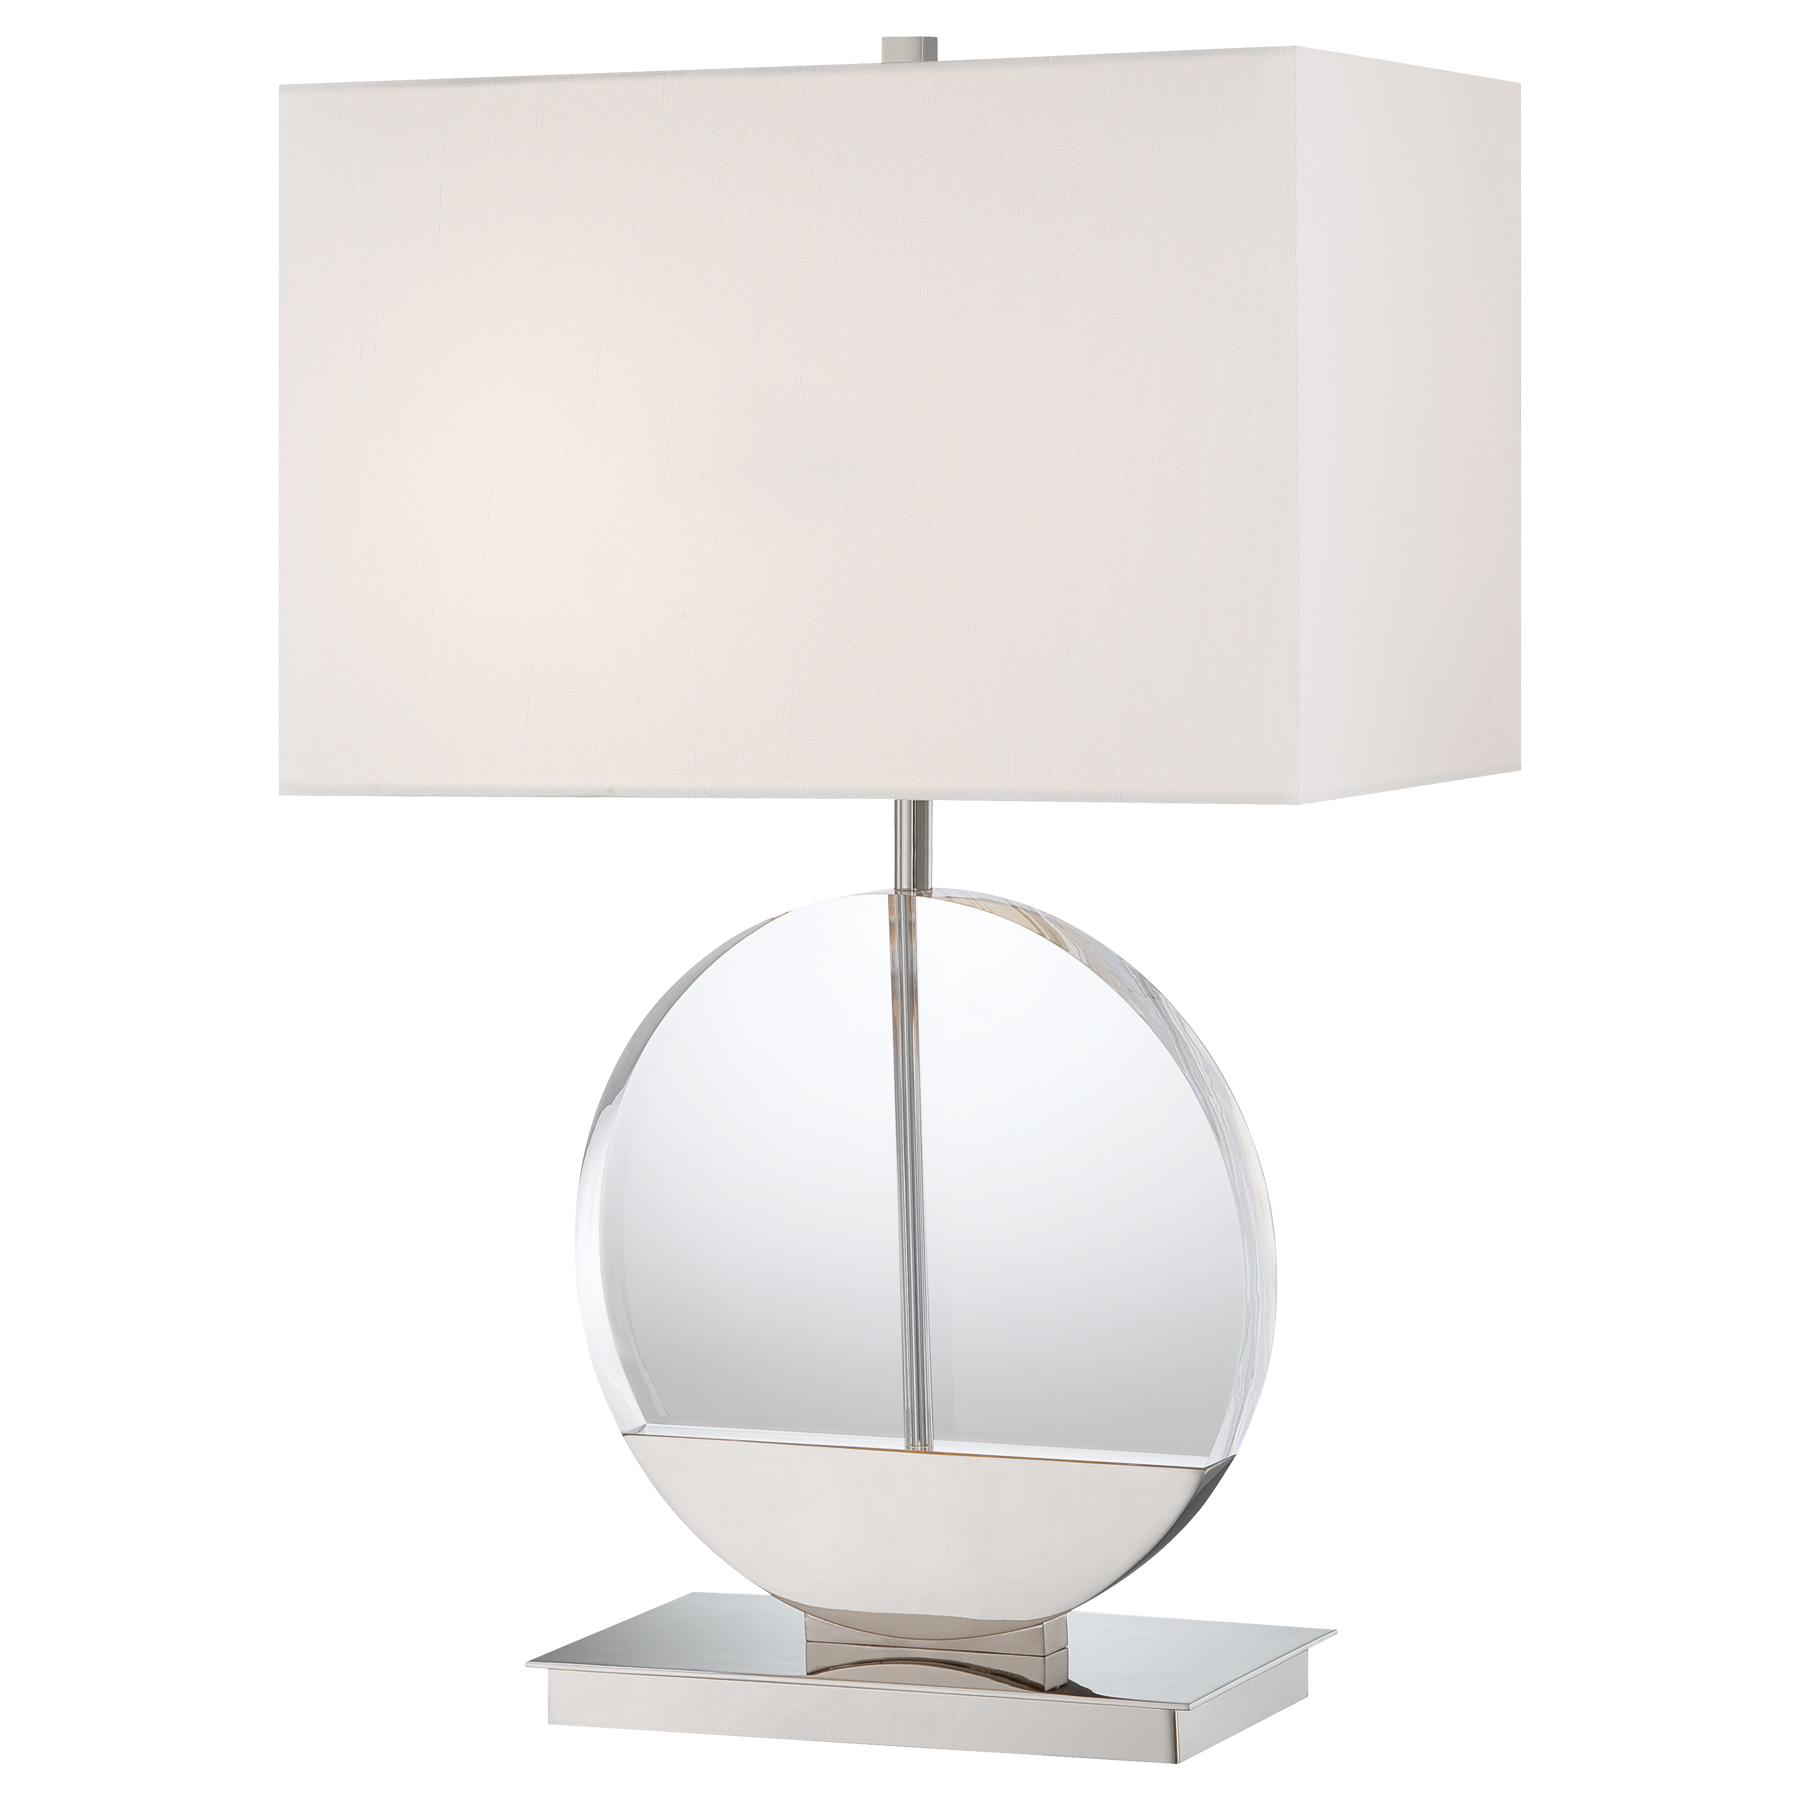 Lovely P764 Table Lamp By George Kovacs | P764 613